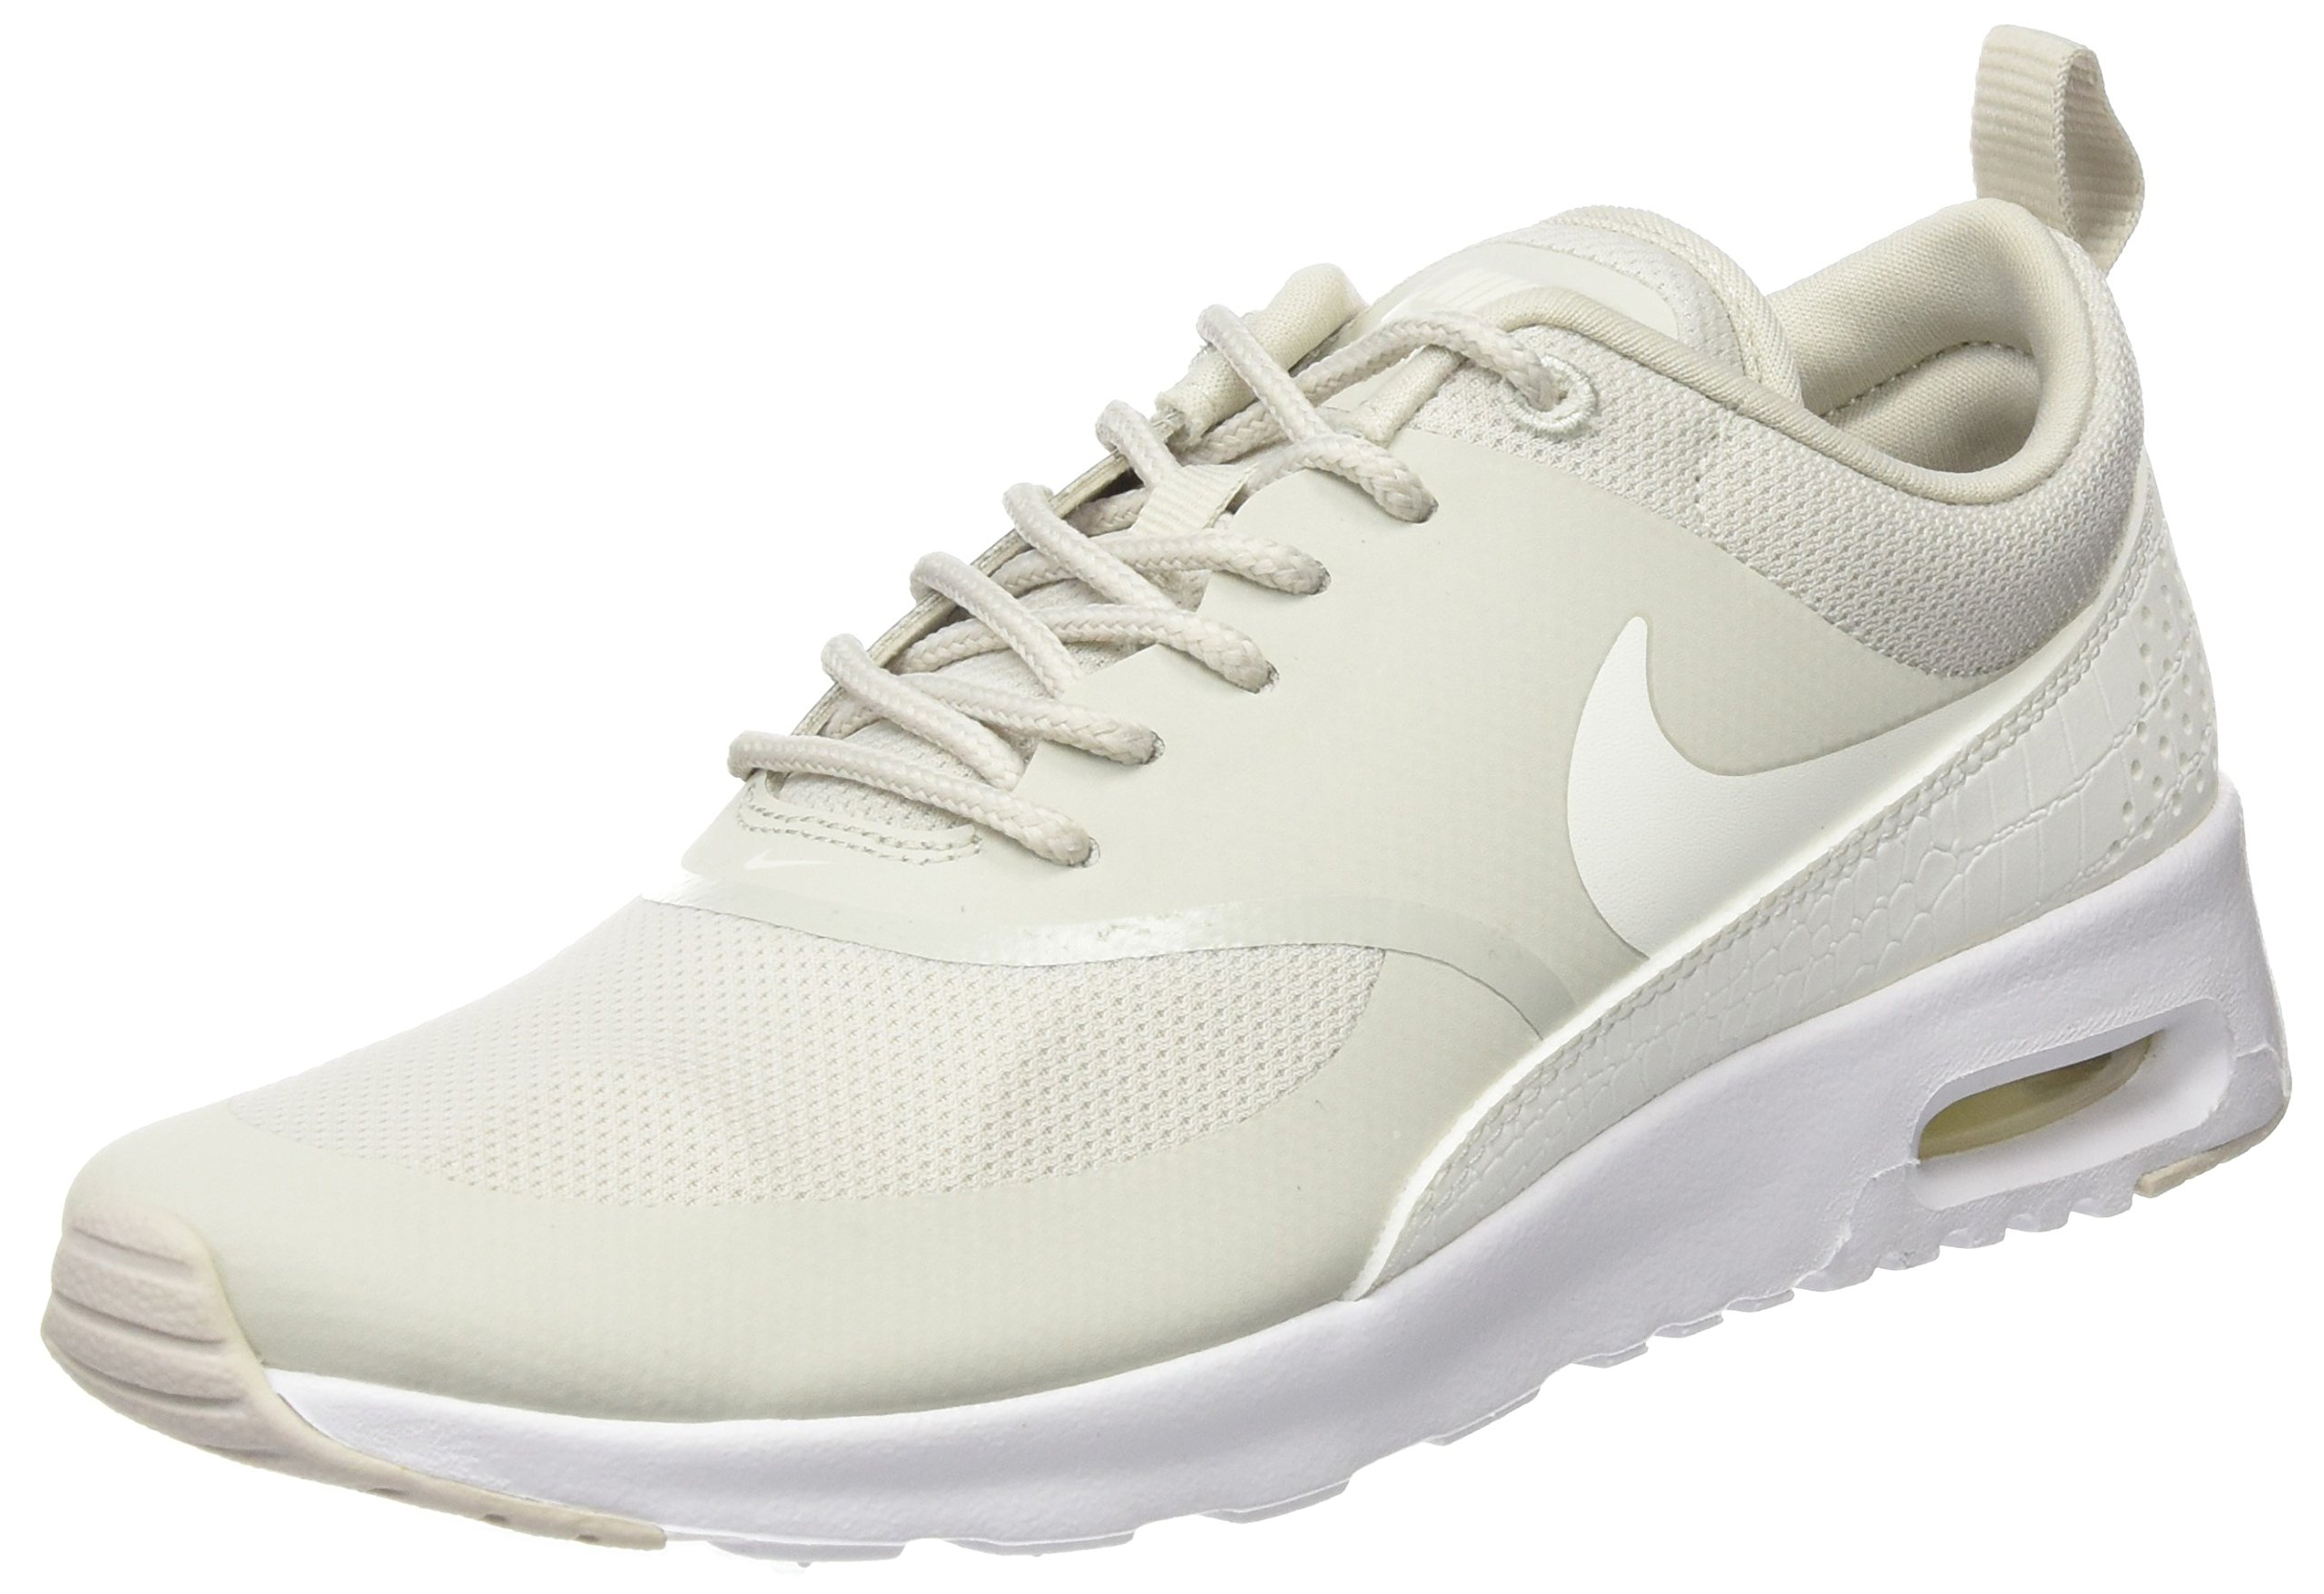 a13717fde6ed3 Galleon - Nike Women s Air Max Thea Low-Top Sneakers